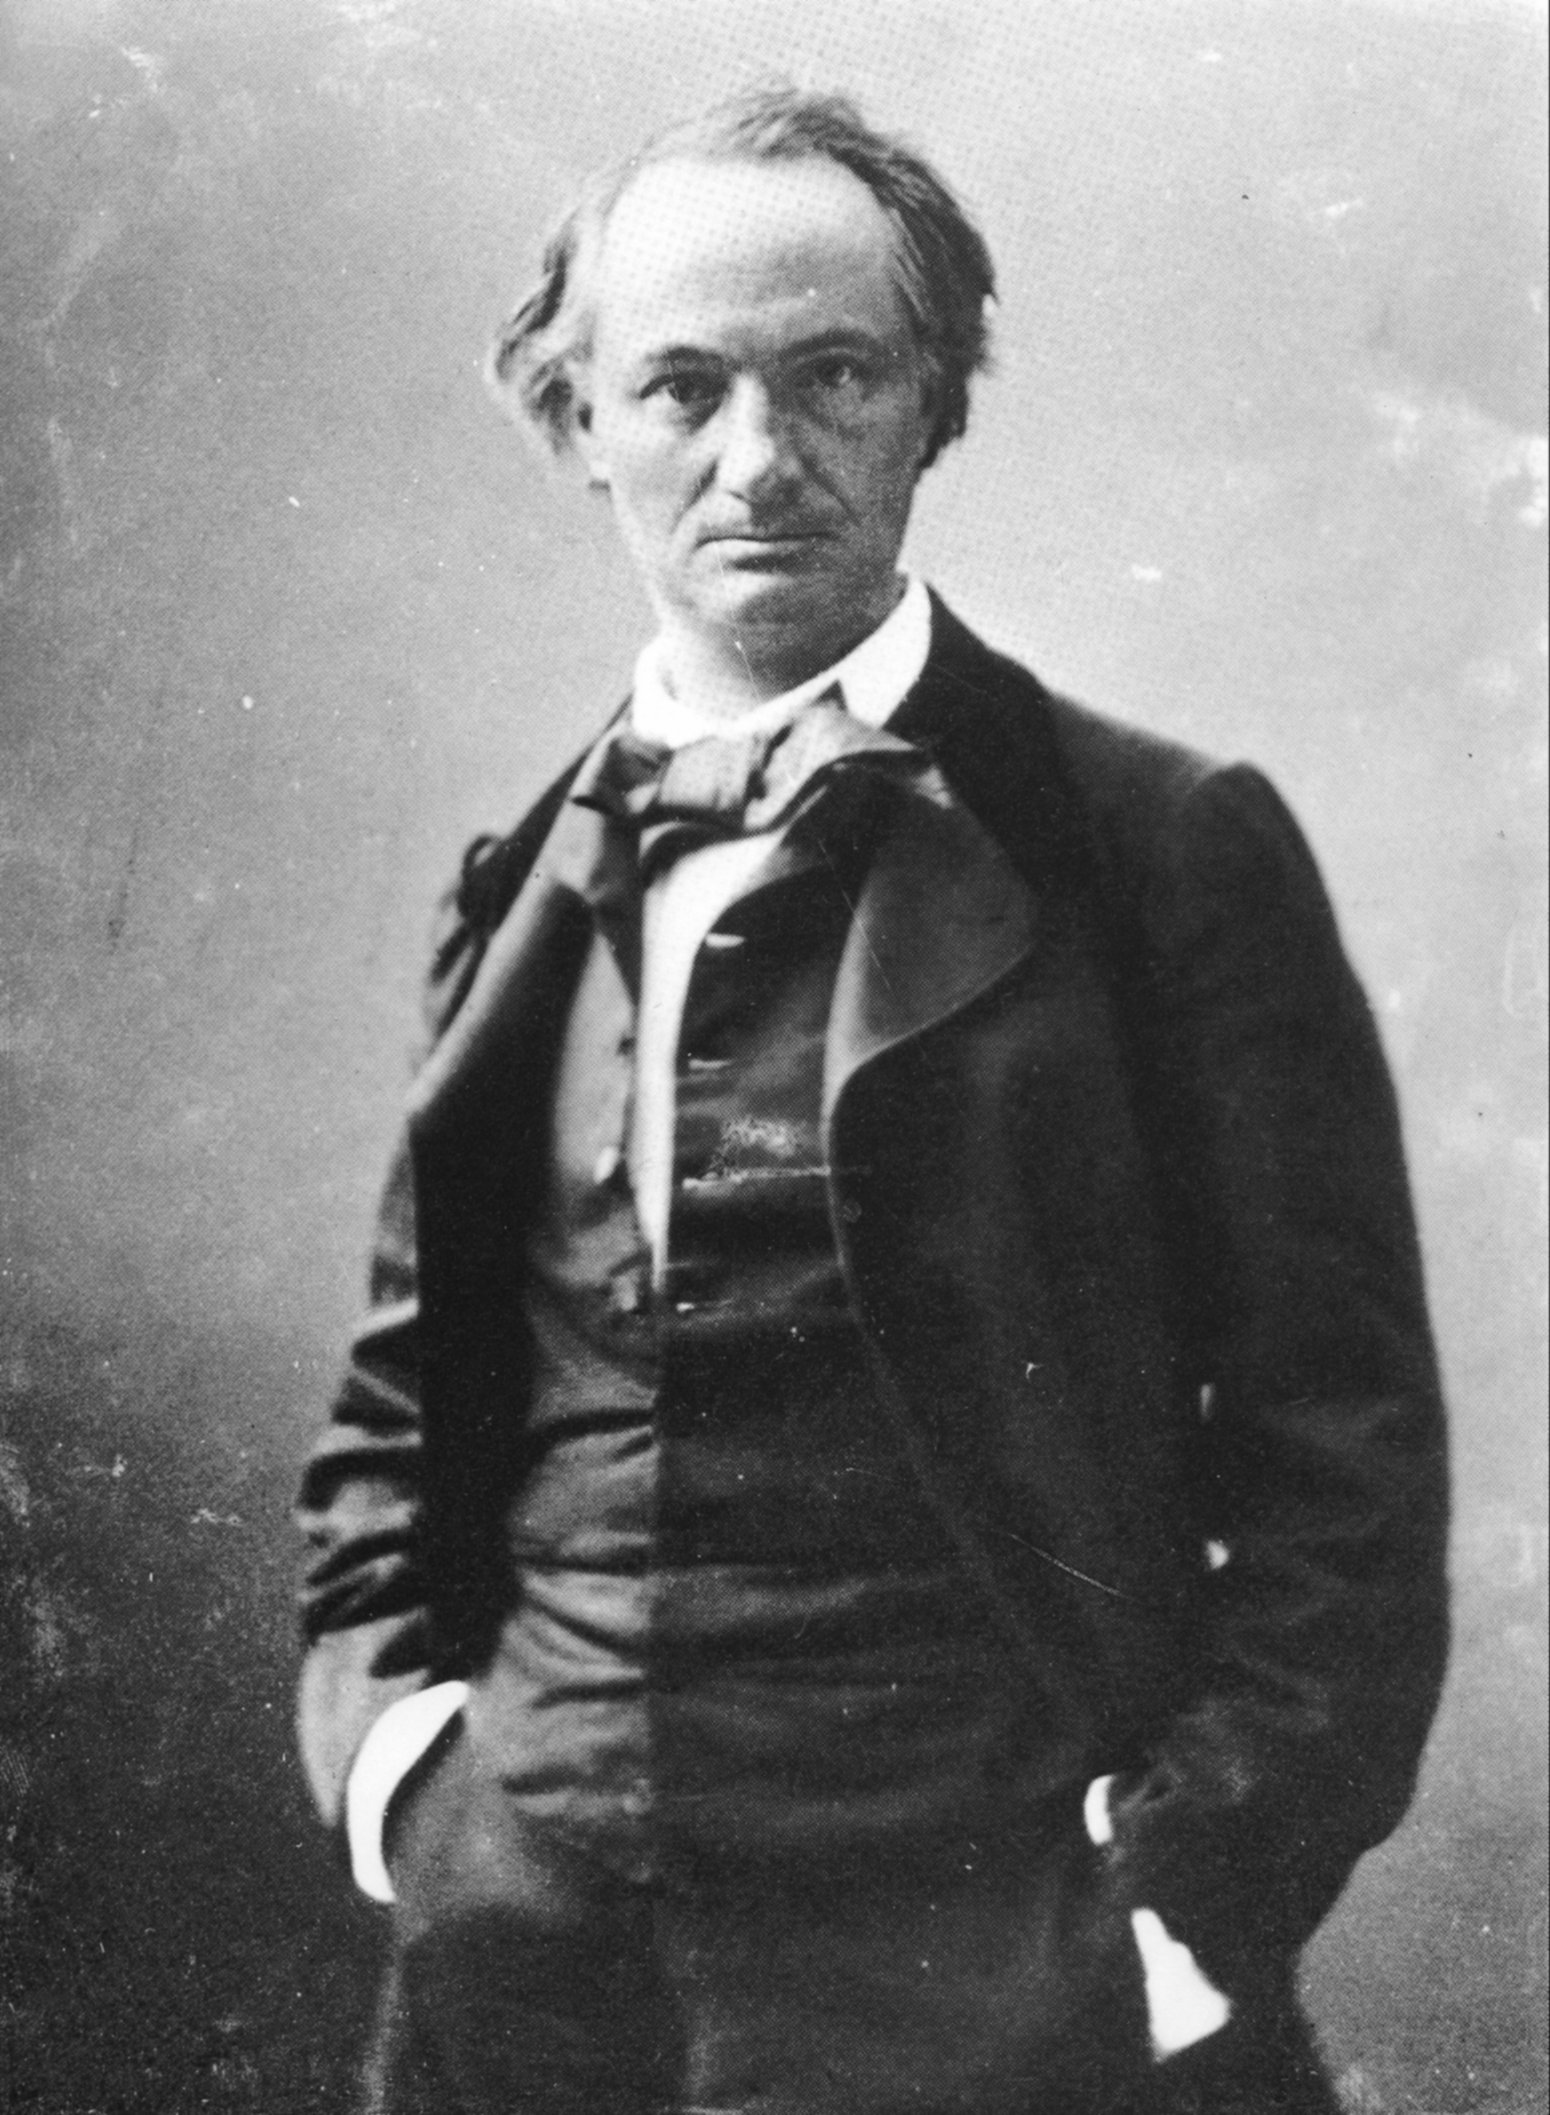 Charles baudelaire oeuvres ouvertes for Biographie d alexandre jardin